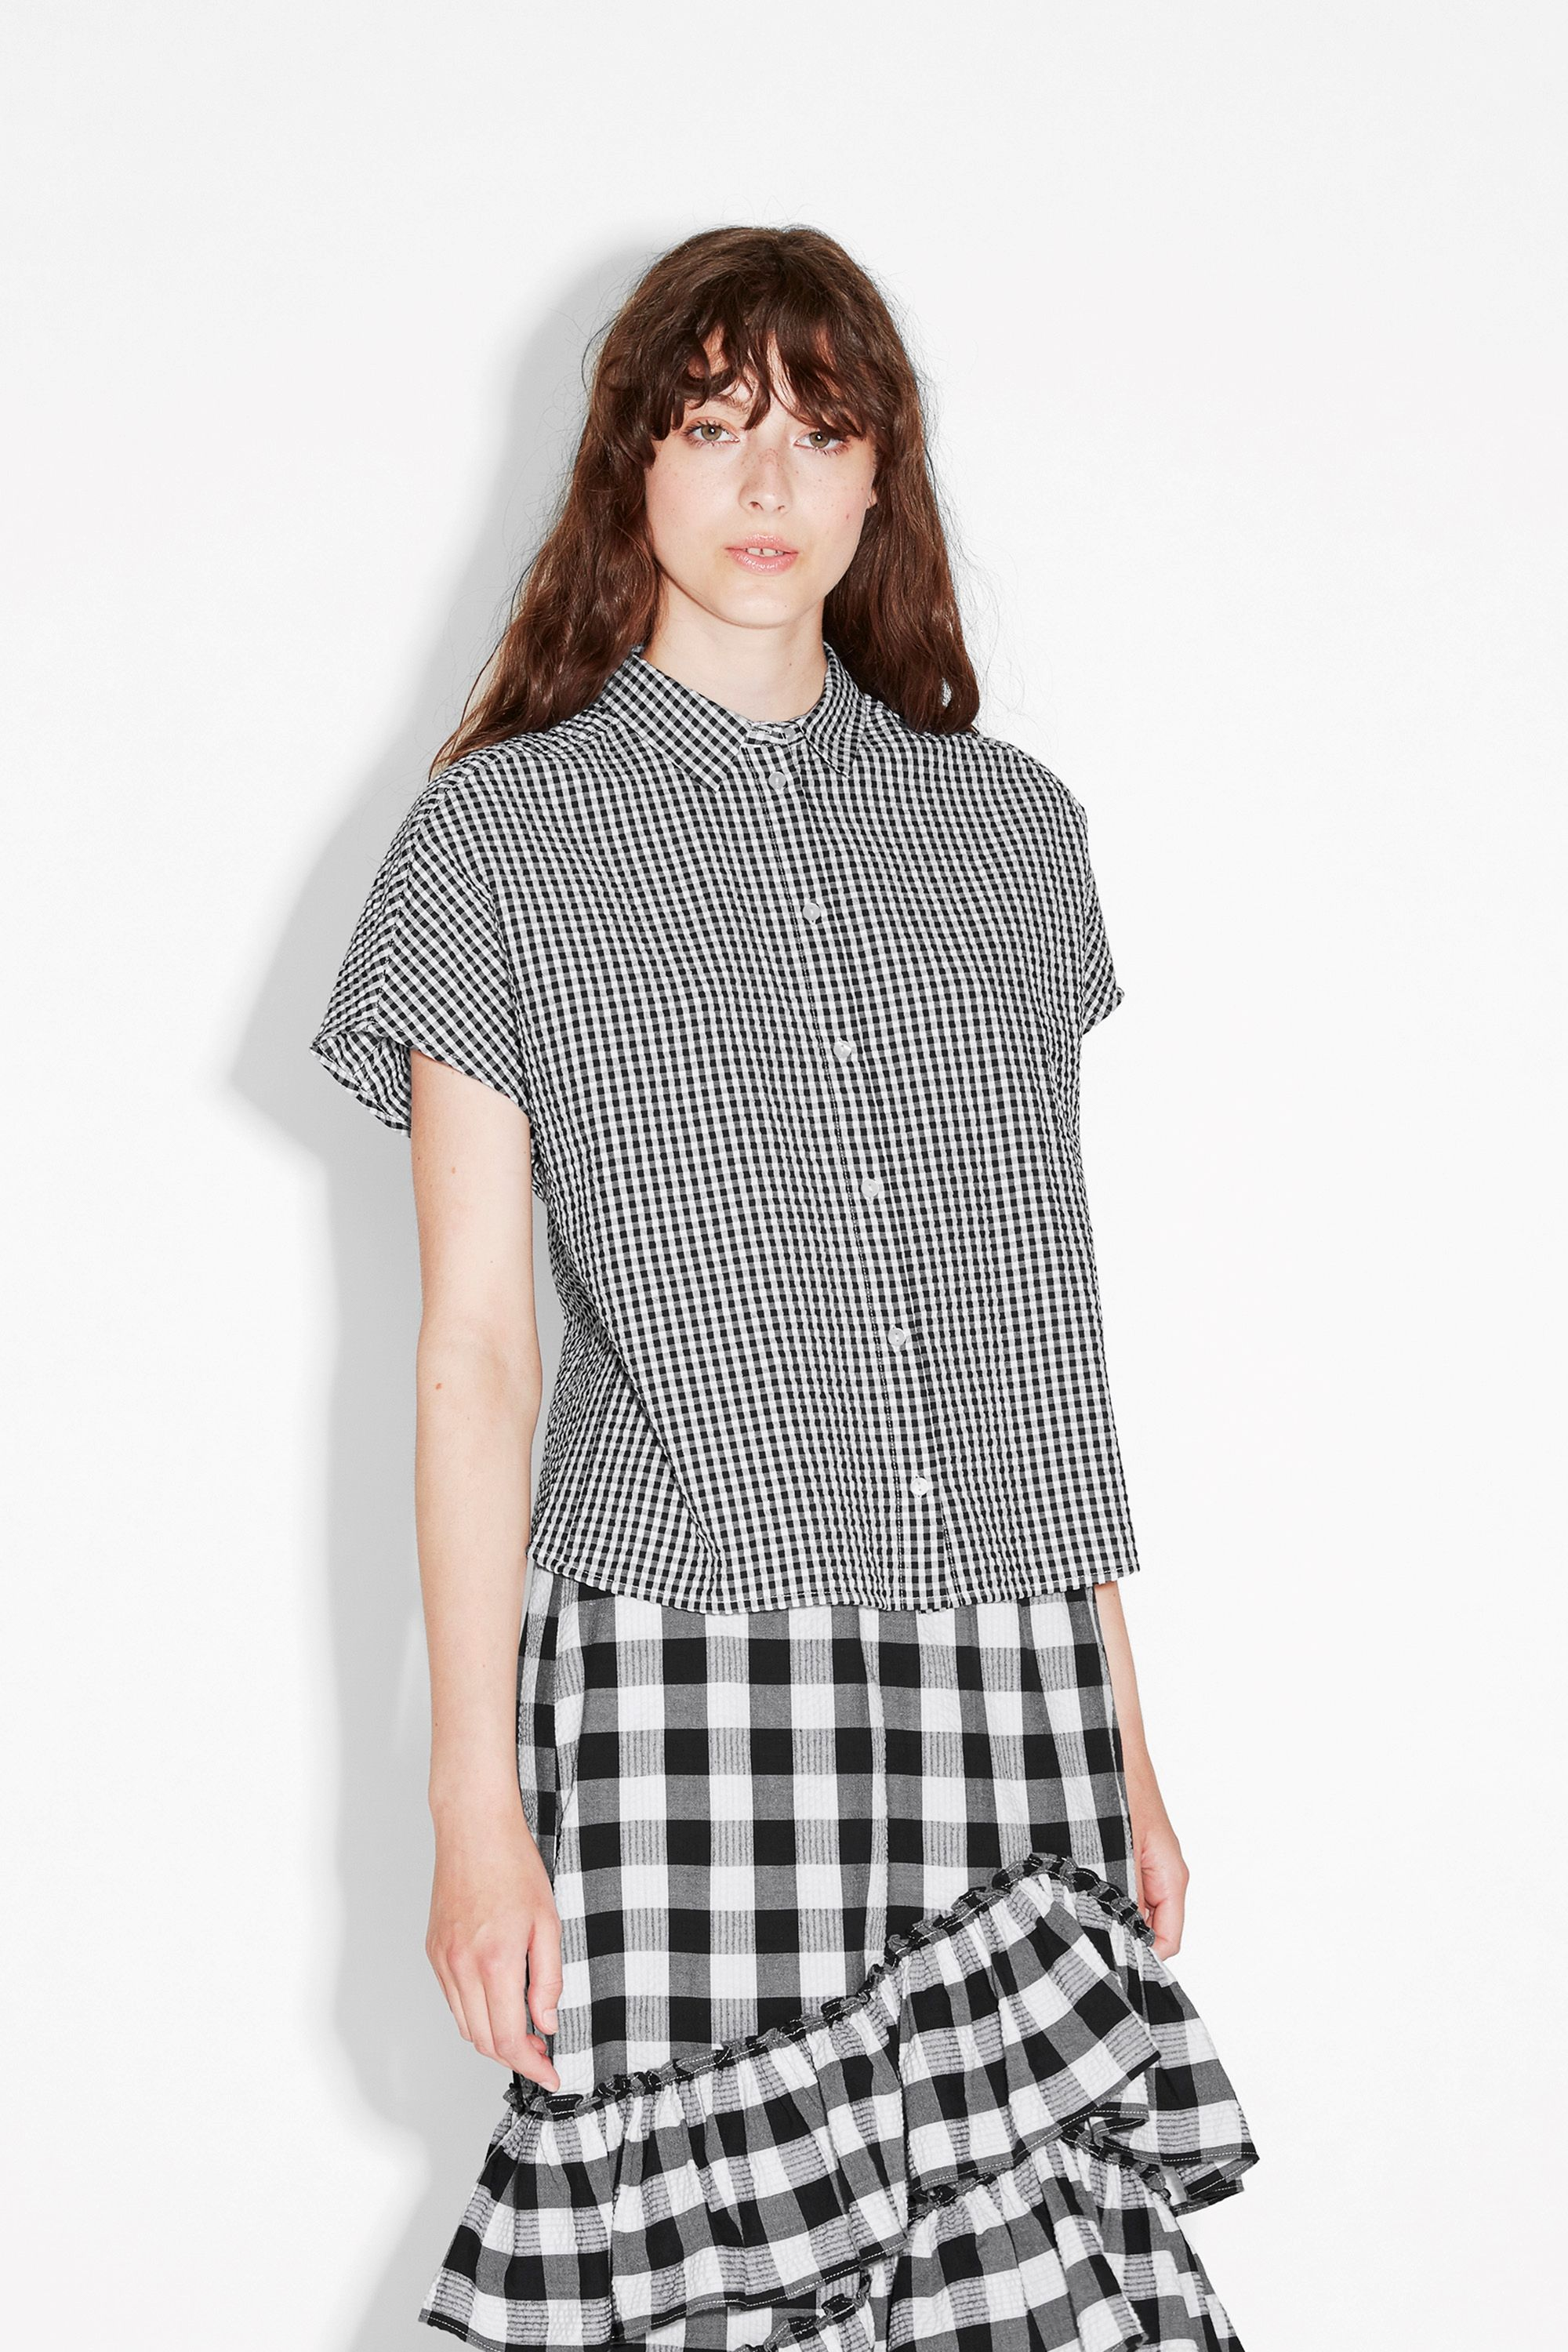 This button-up blouse gives us major summer feels. With its open back and seersucker cotton fabric, it's an airy beauty that'll keep you looking cute no matter how strong the sunbeams. colour: black magic  In a size small the chest width is 100 cm and the length is 59 cm. The model is 176 cm and is wearing a size small.